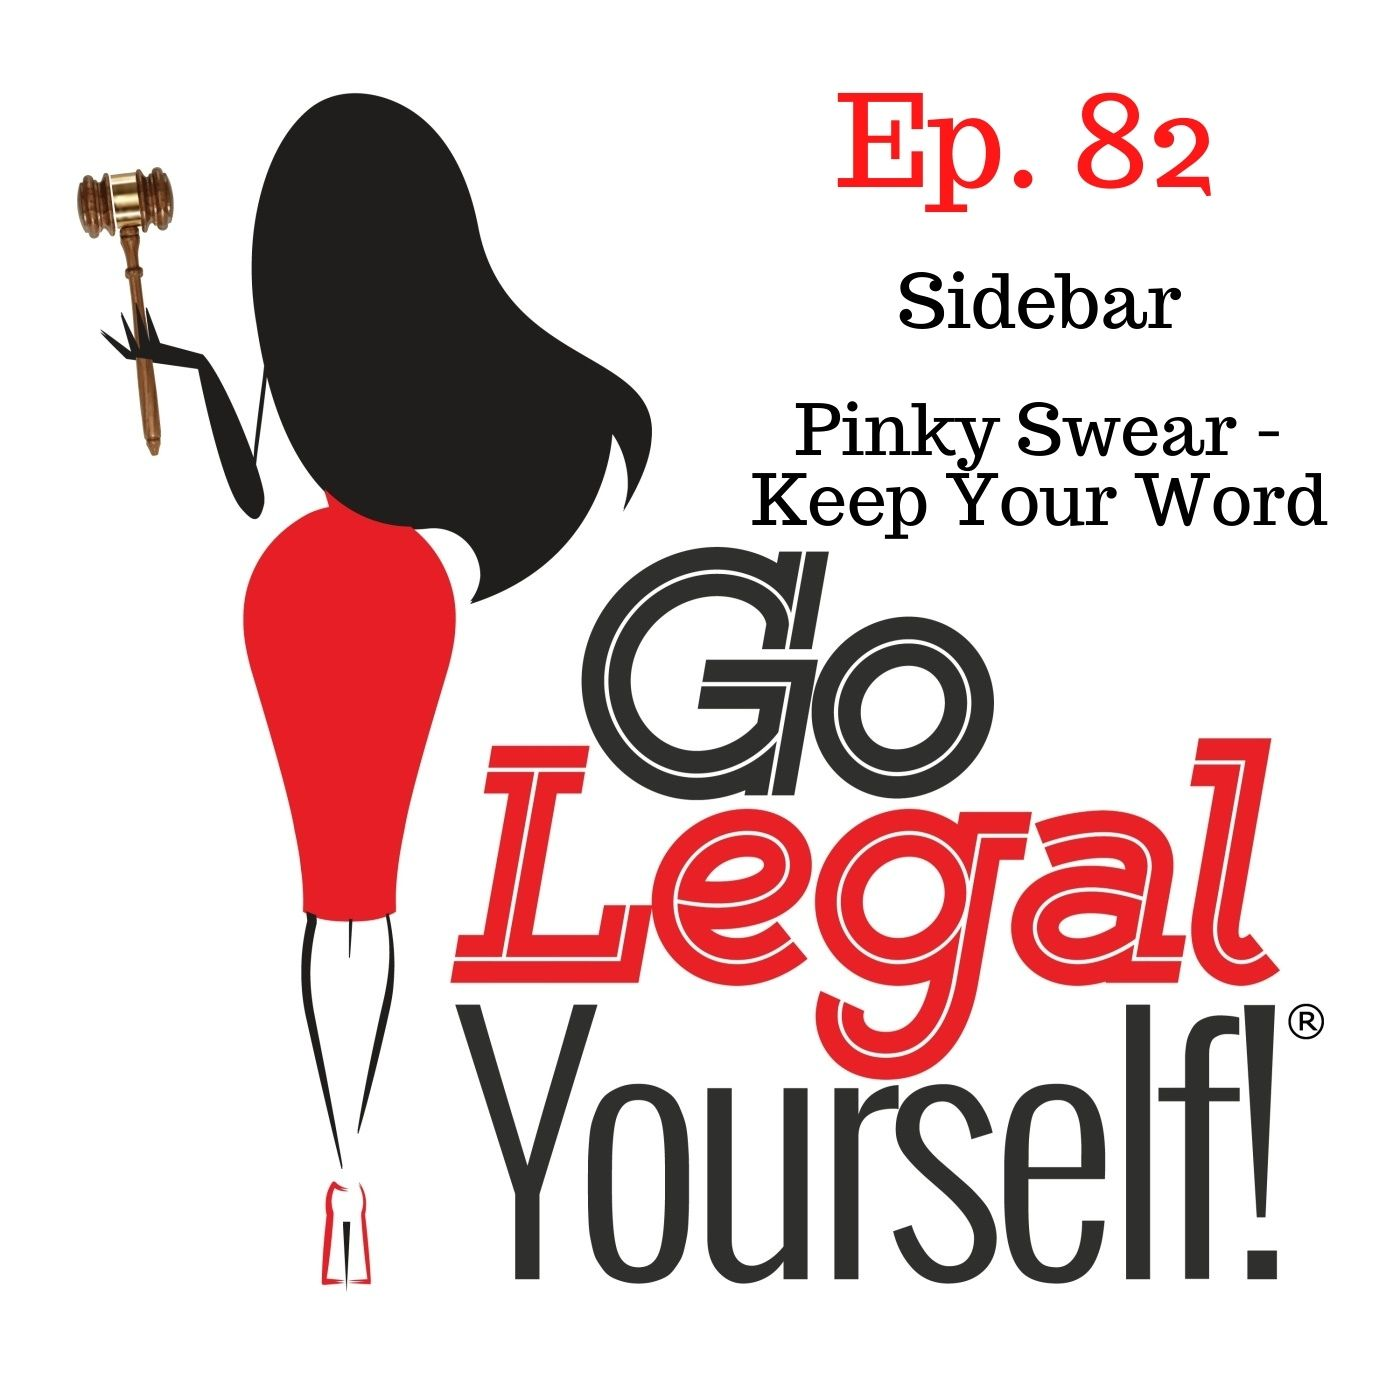 Ep. 82 Sidebar: Pinky Swear - Keep Your Word